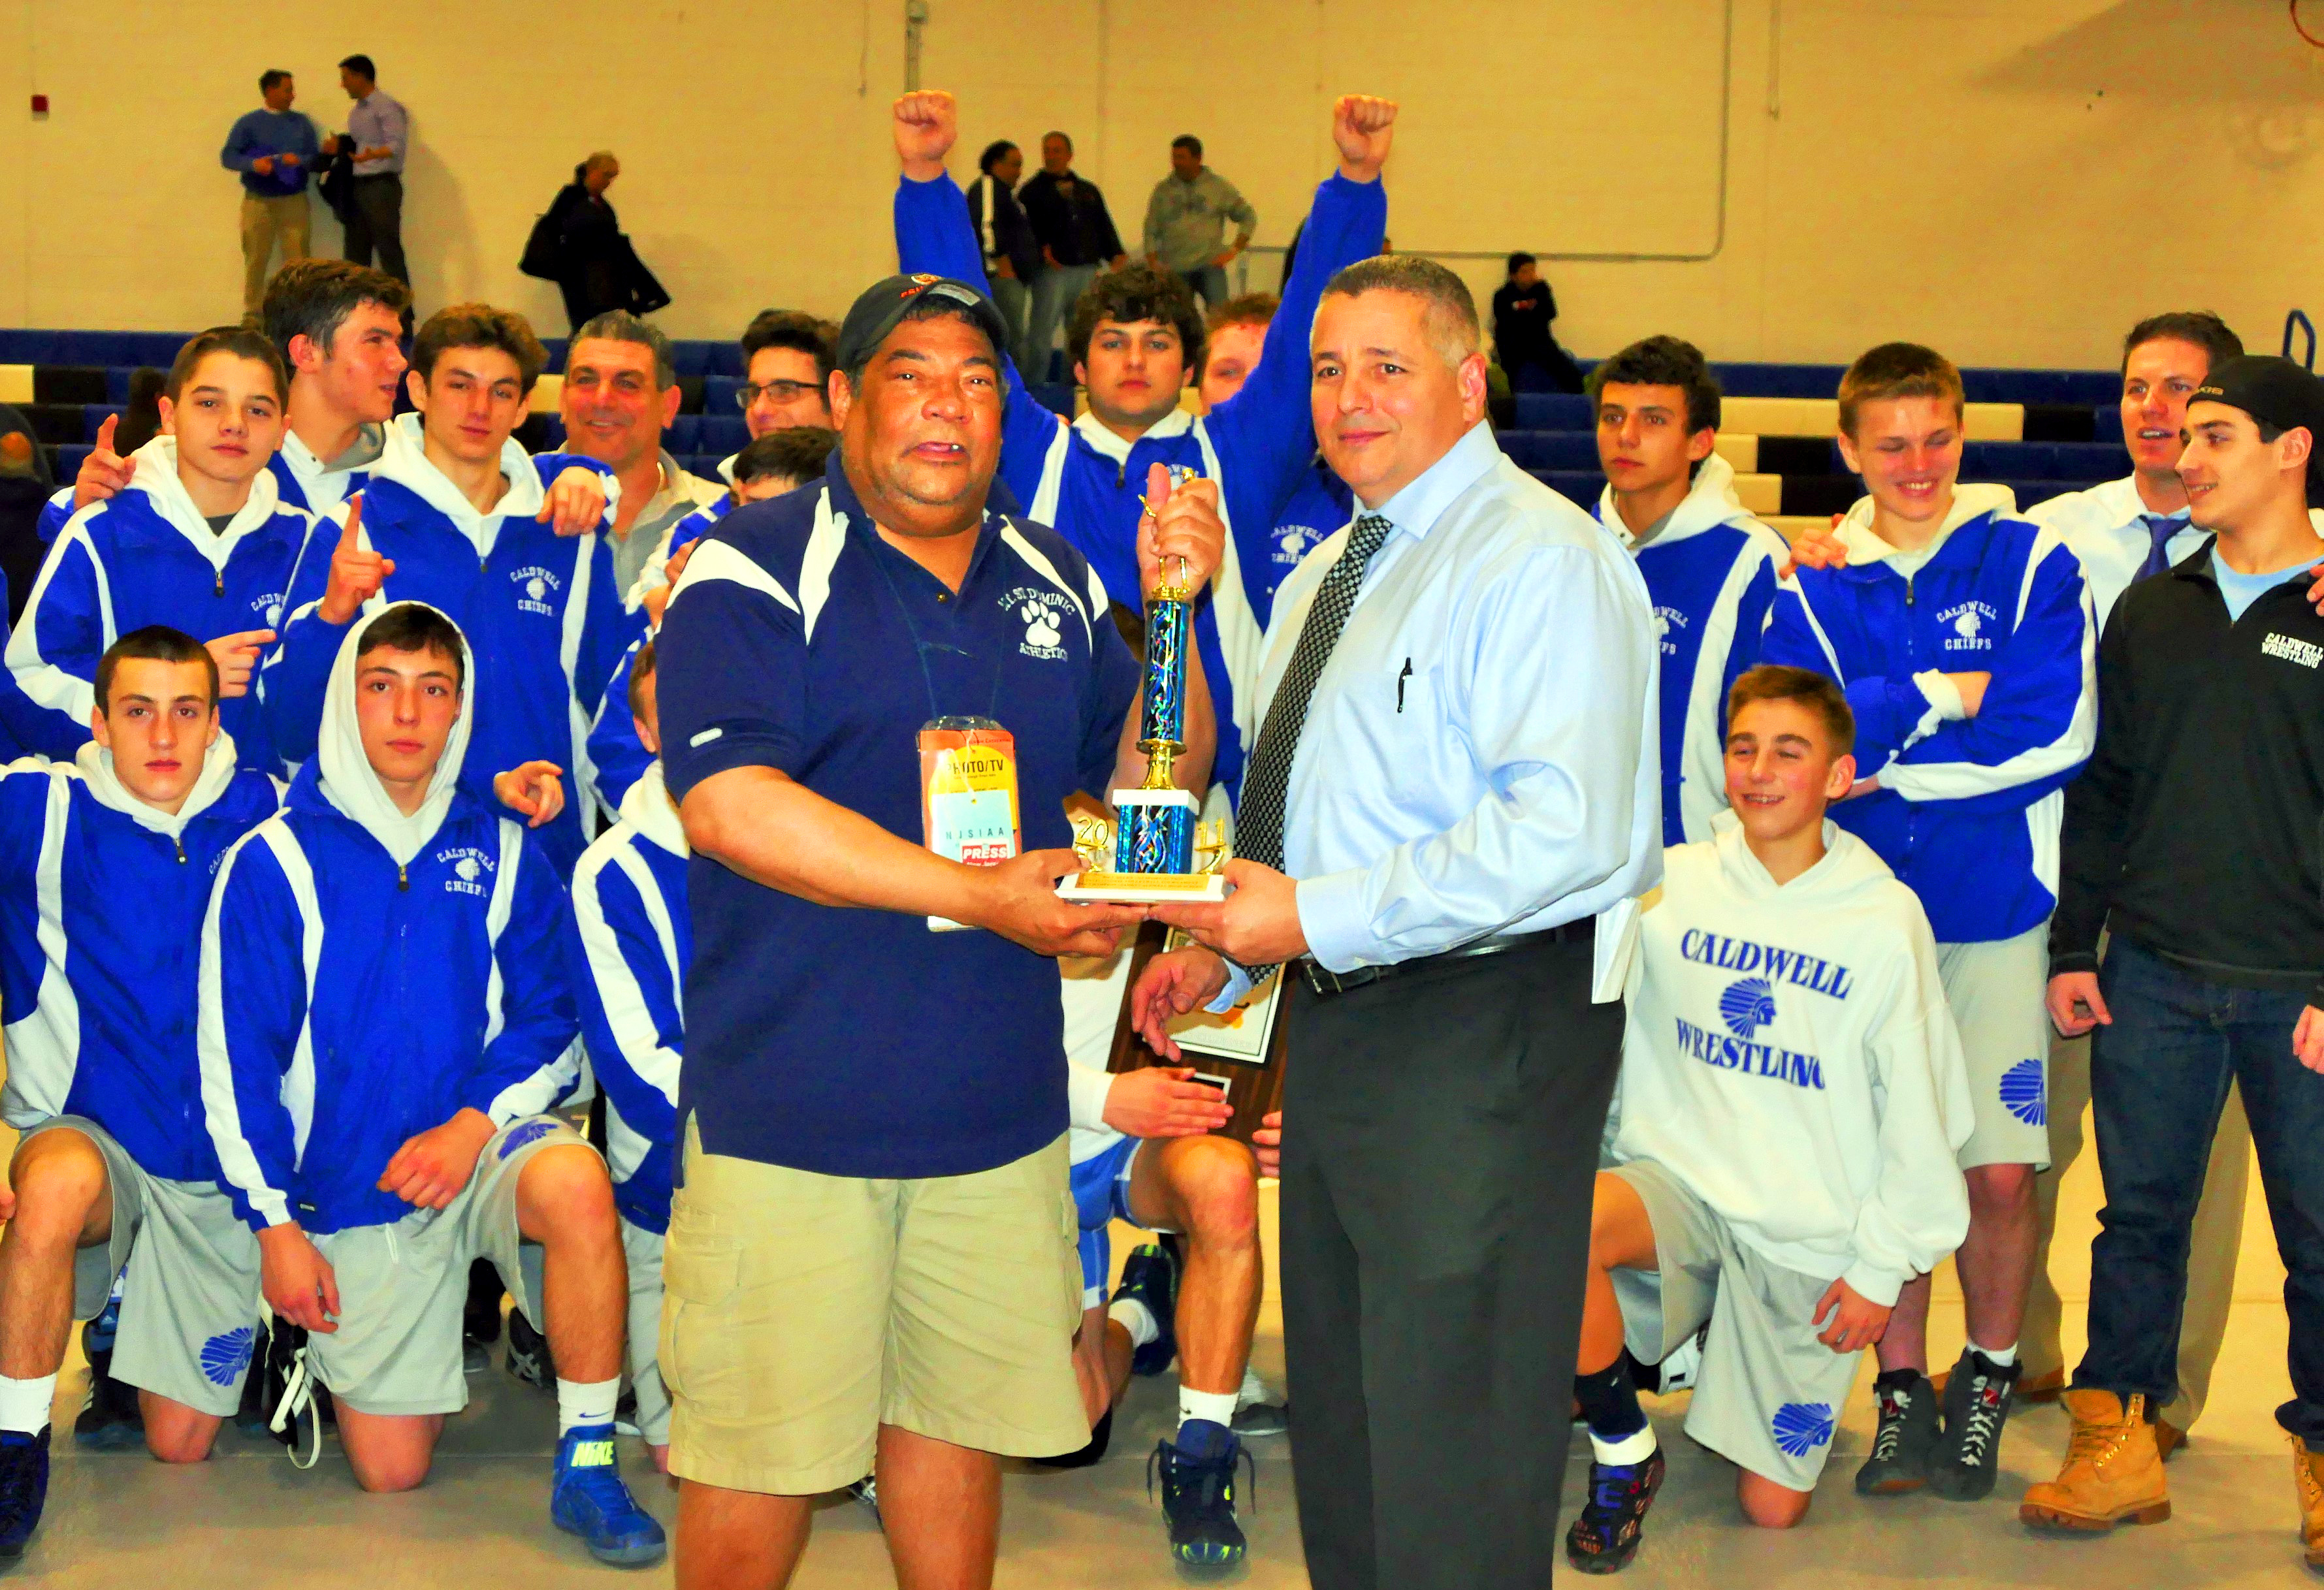 James Caldwell High School Edges Out West Essex Knights to Earn